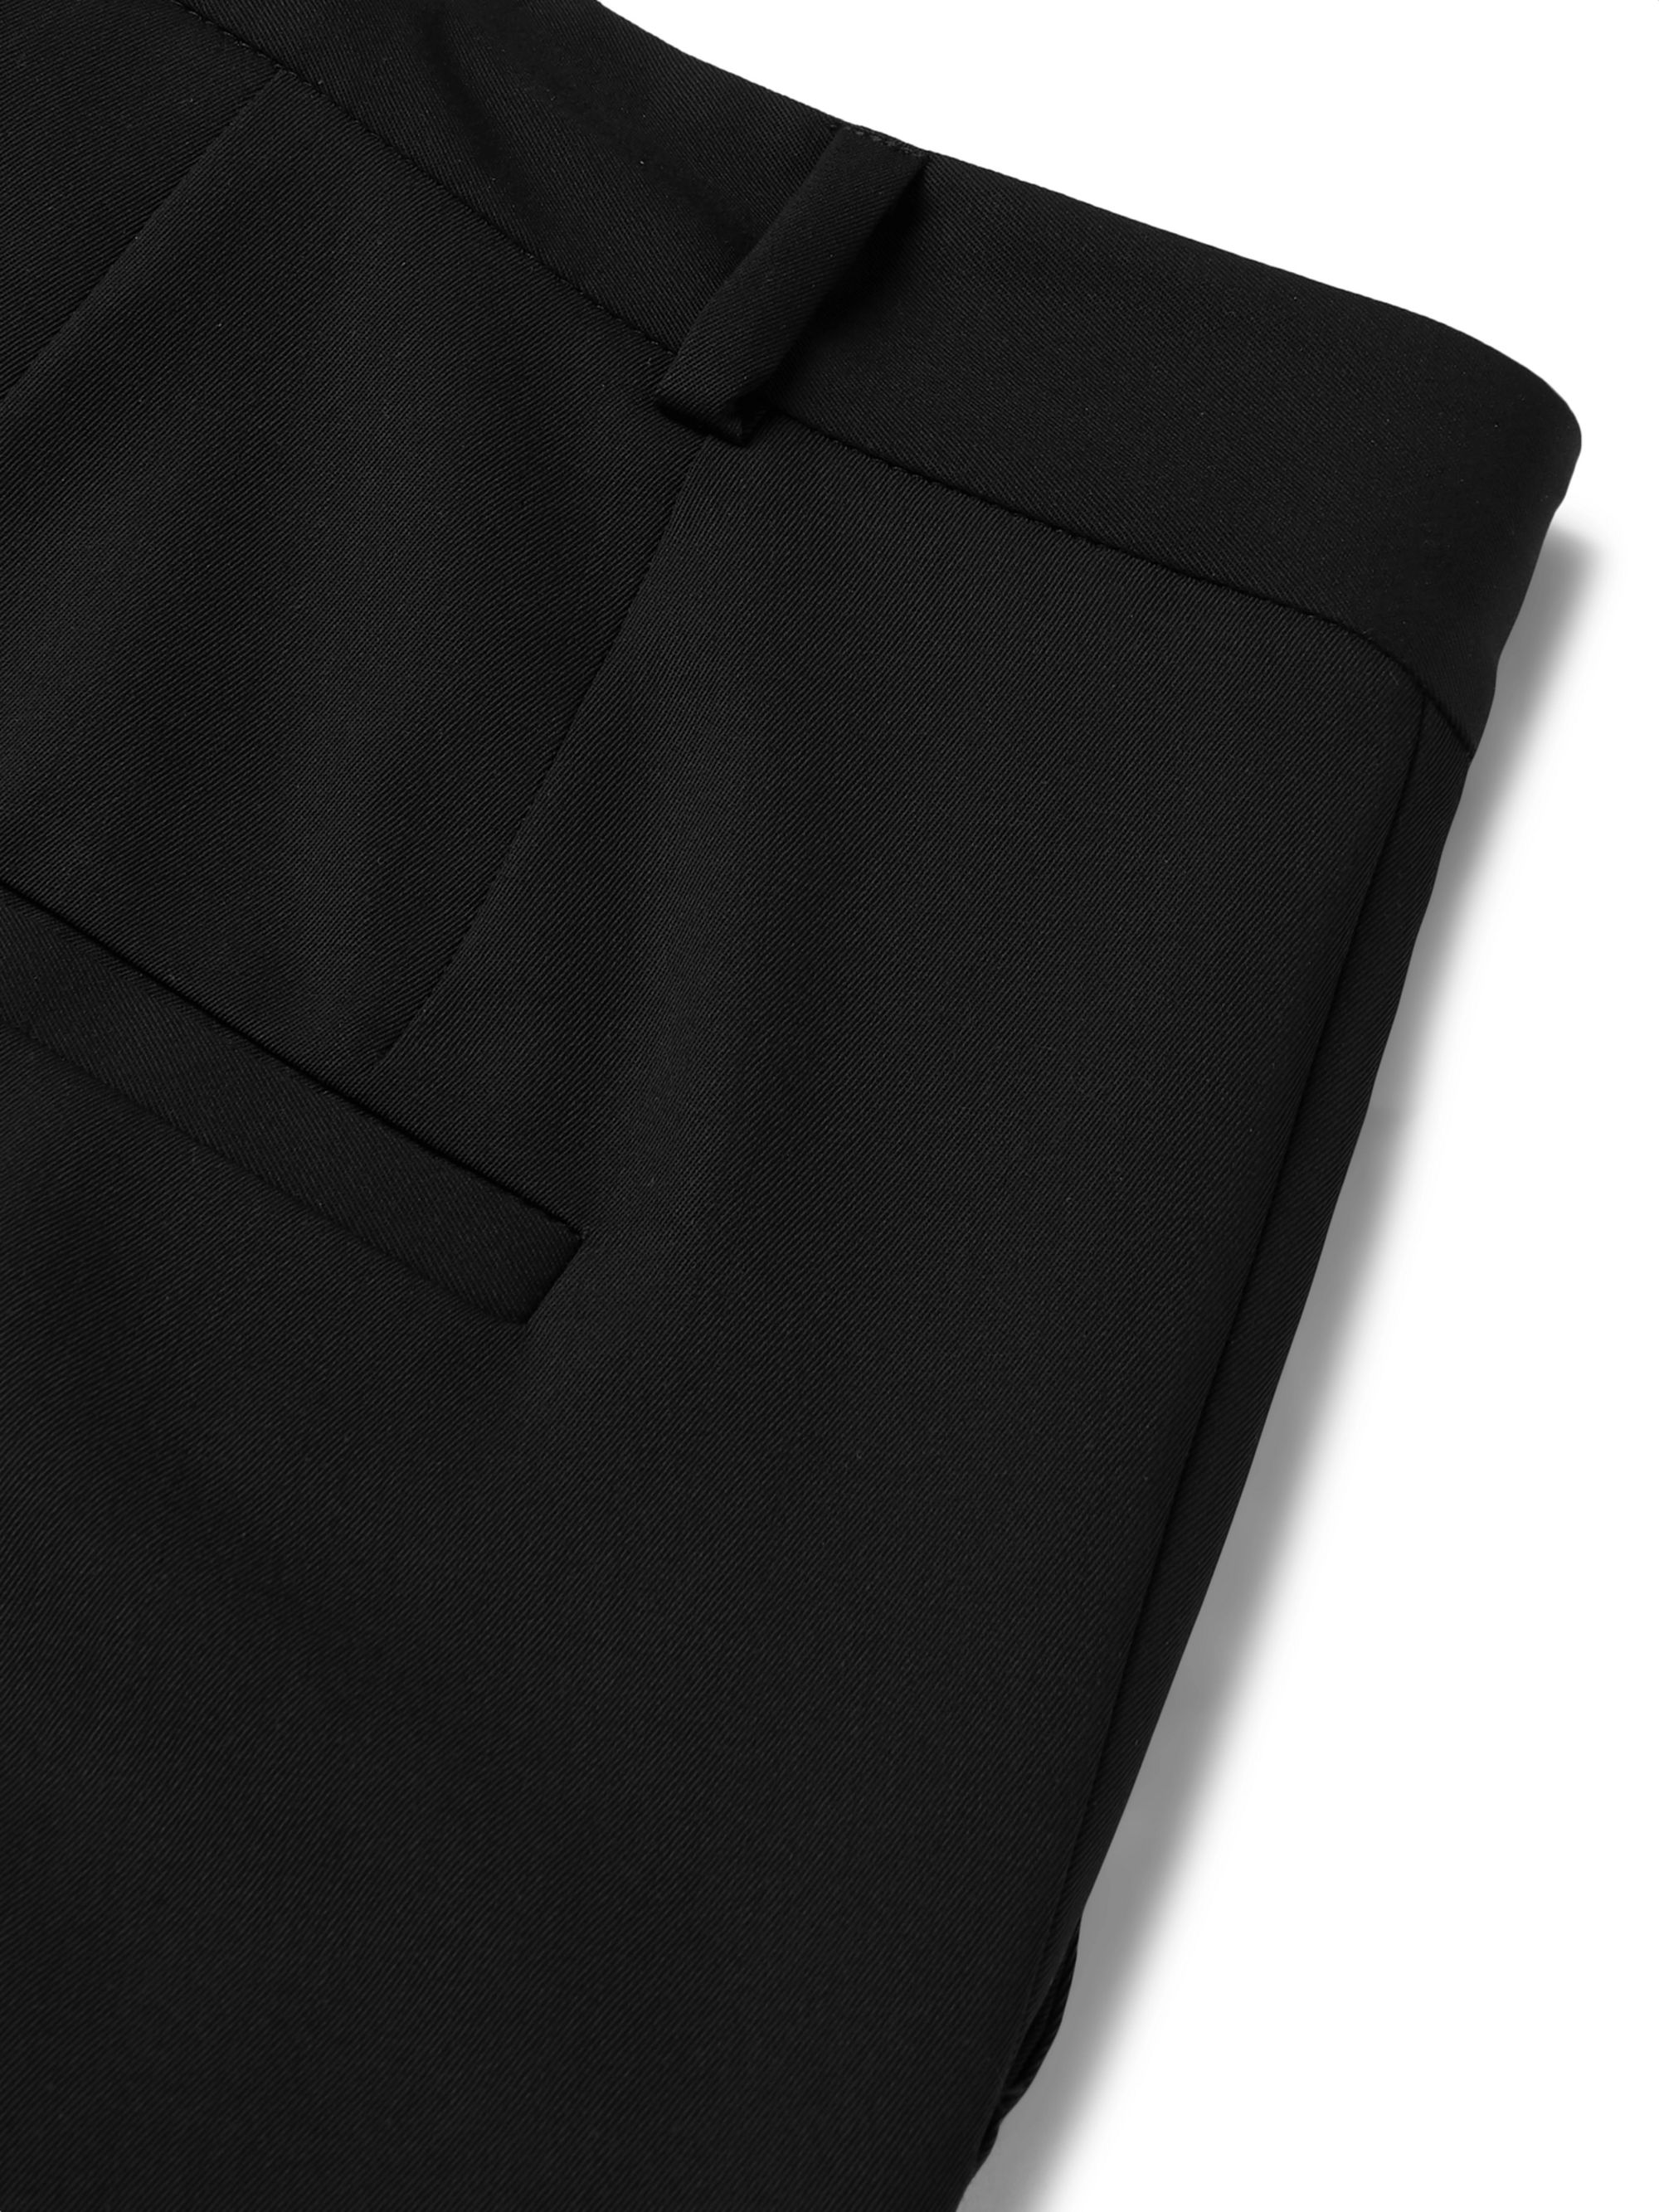 Isabel Benenato Black Virgin Wool Trousers